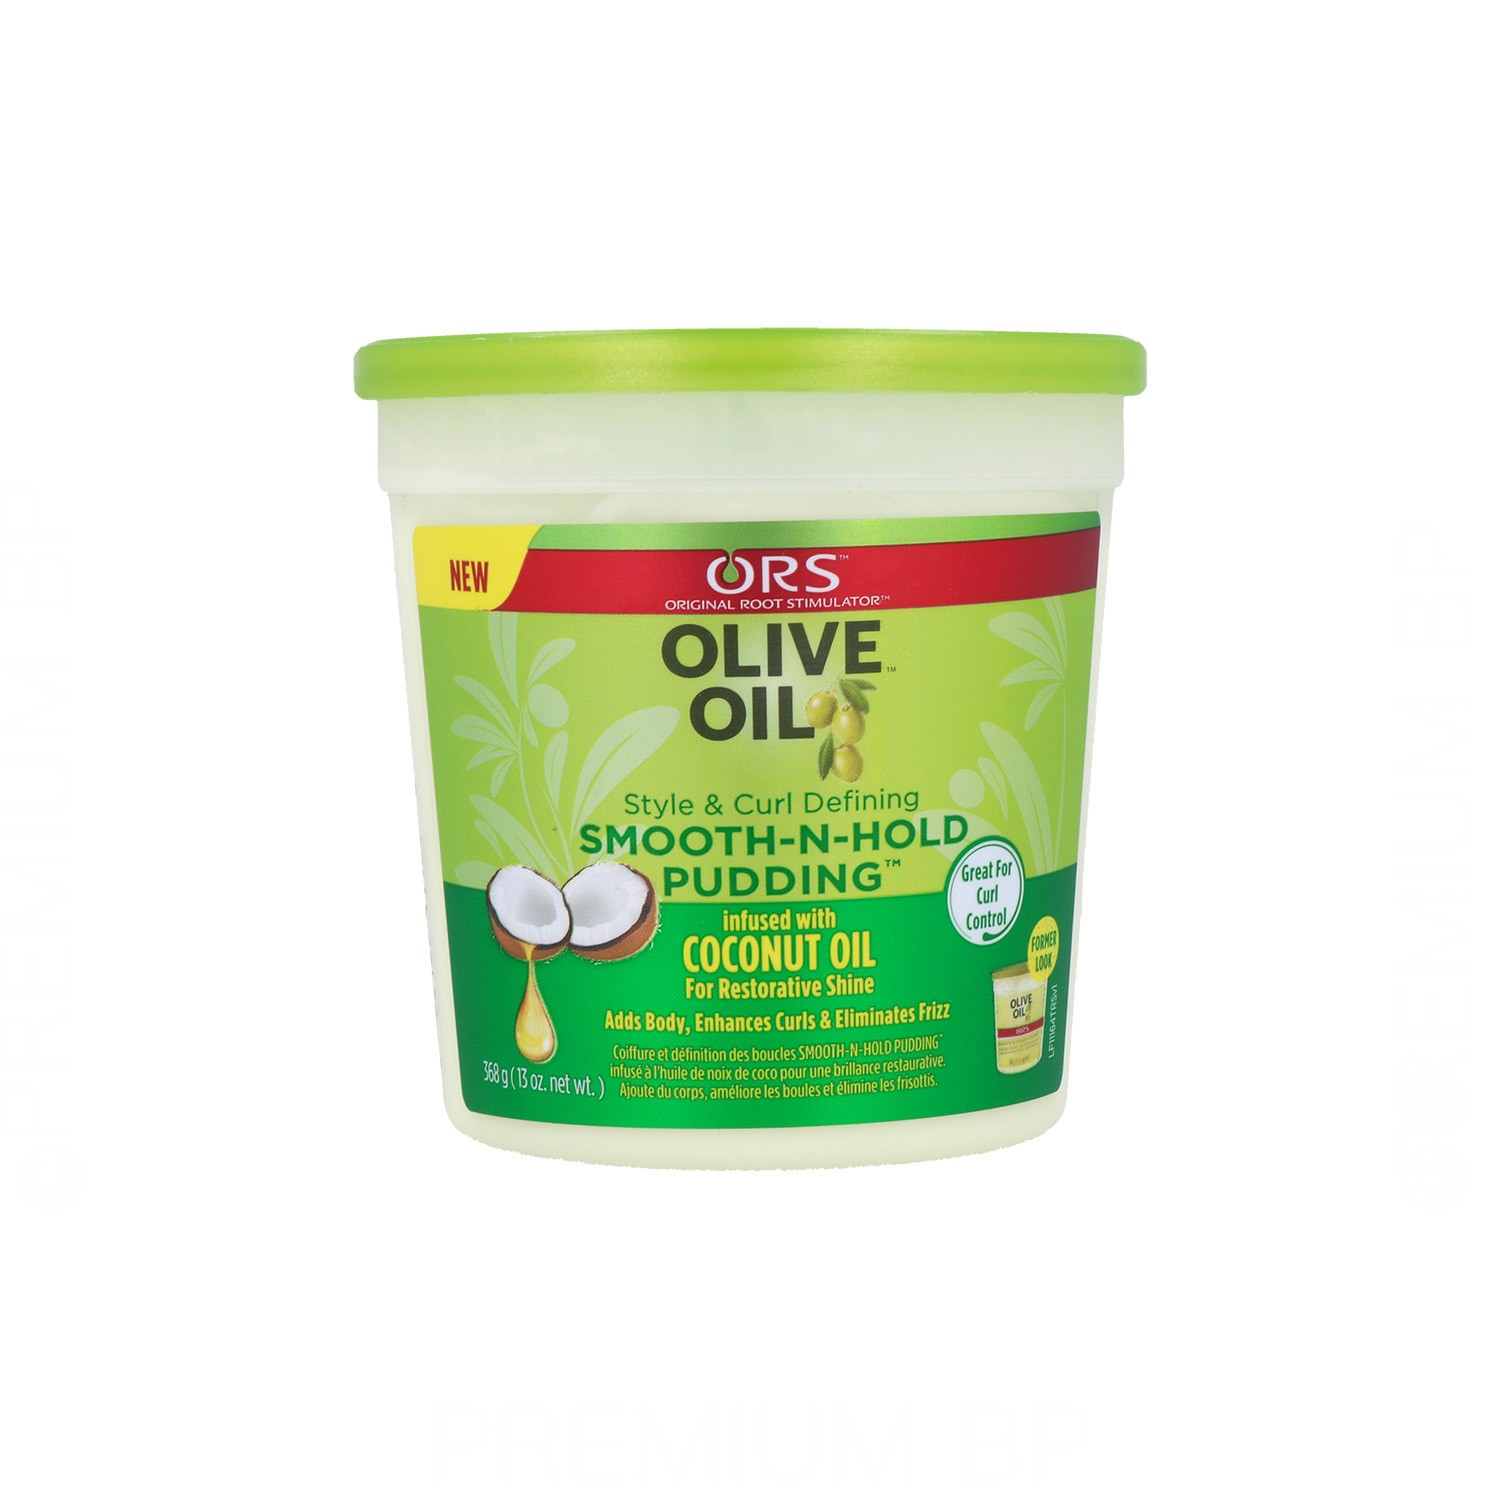 Ors Olive Oil Smooth-n-hold Pudding 368 Ml